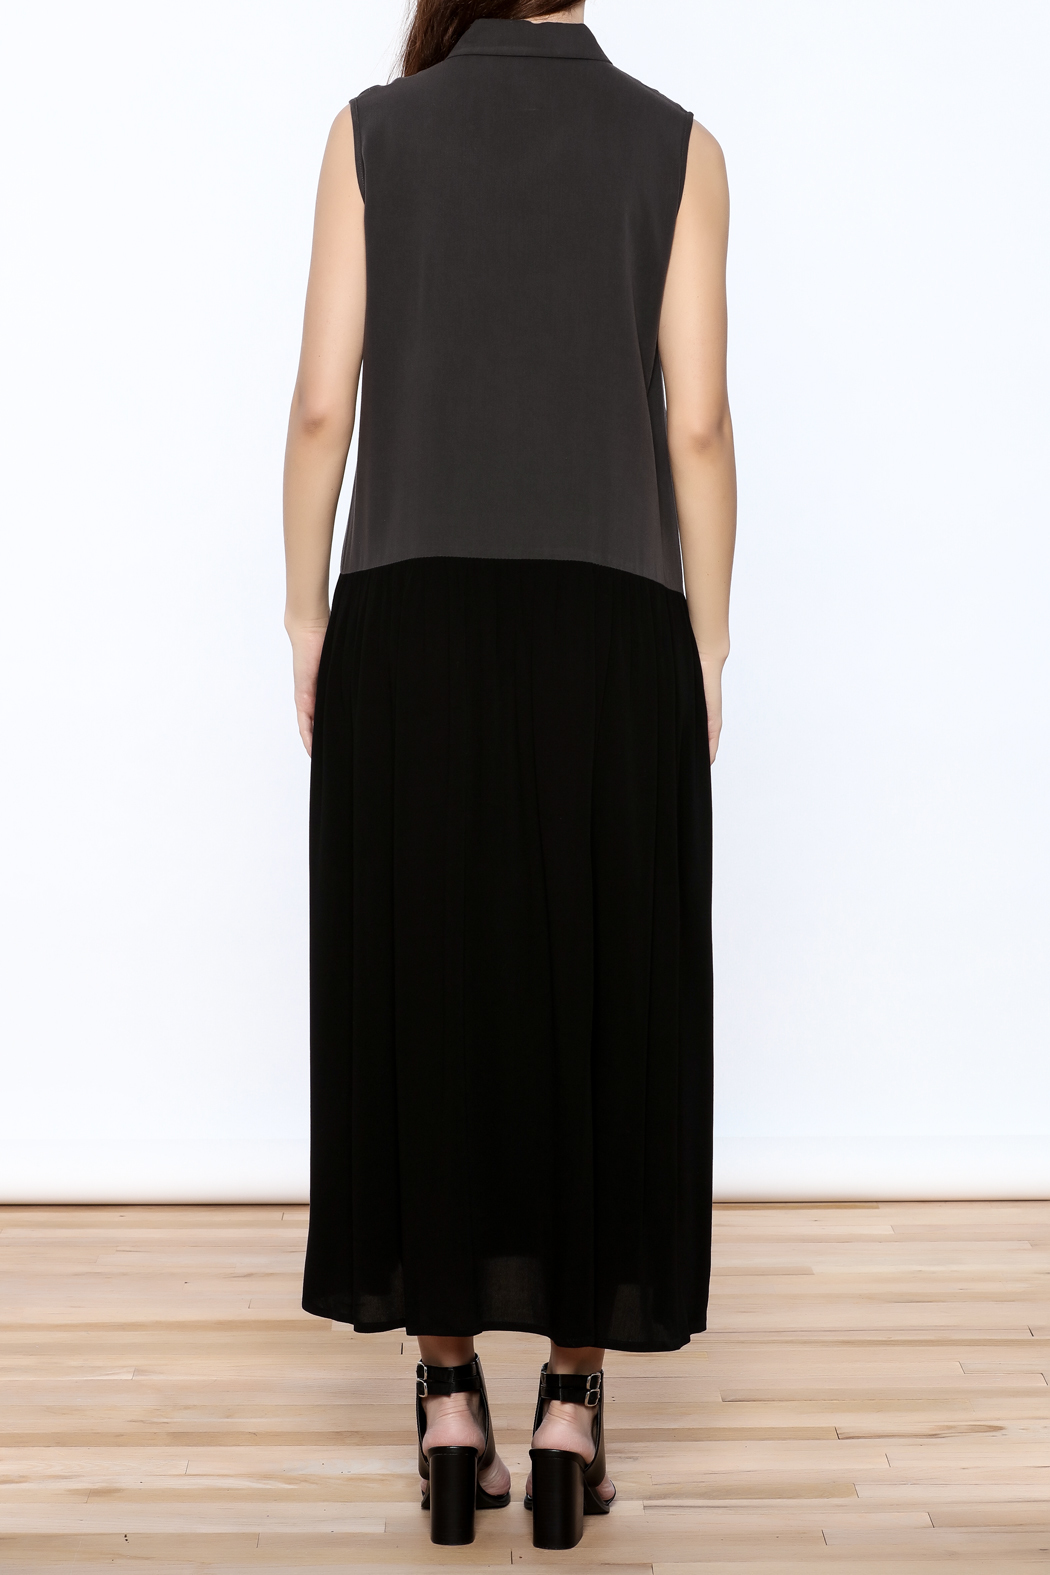 Ronen Chen Two Tone Dress - Back Cropped Image